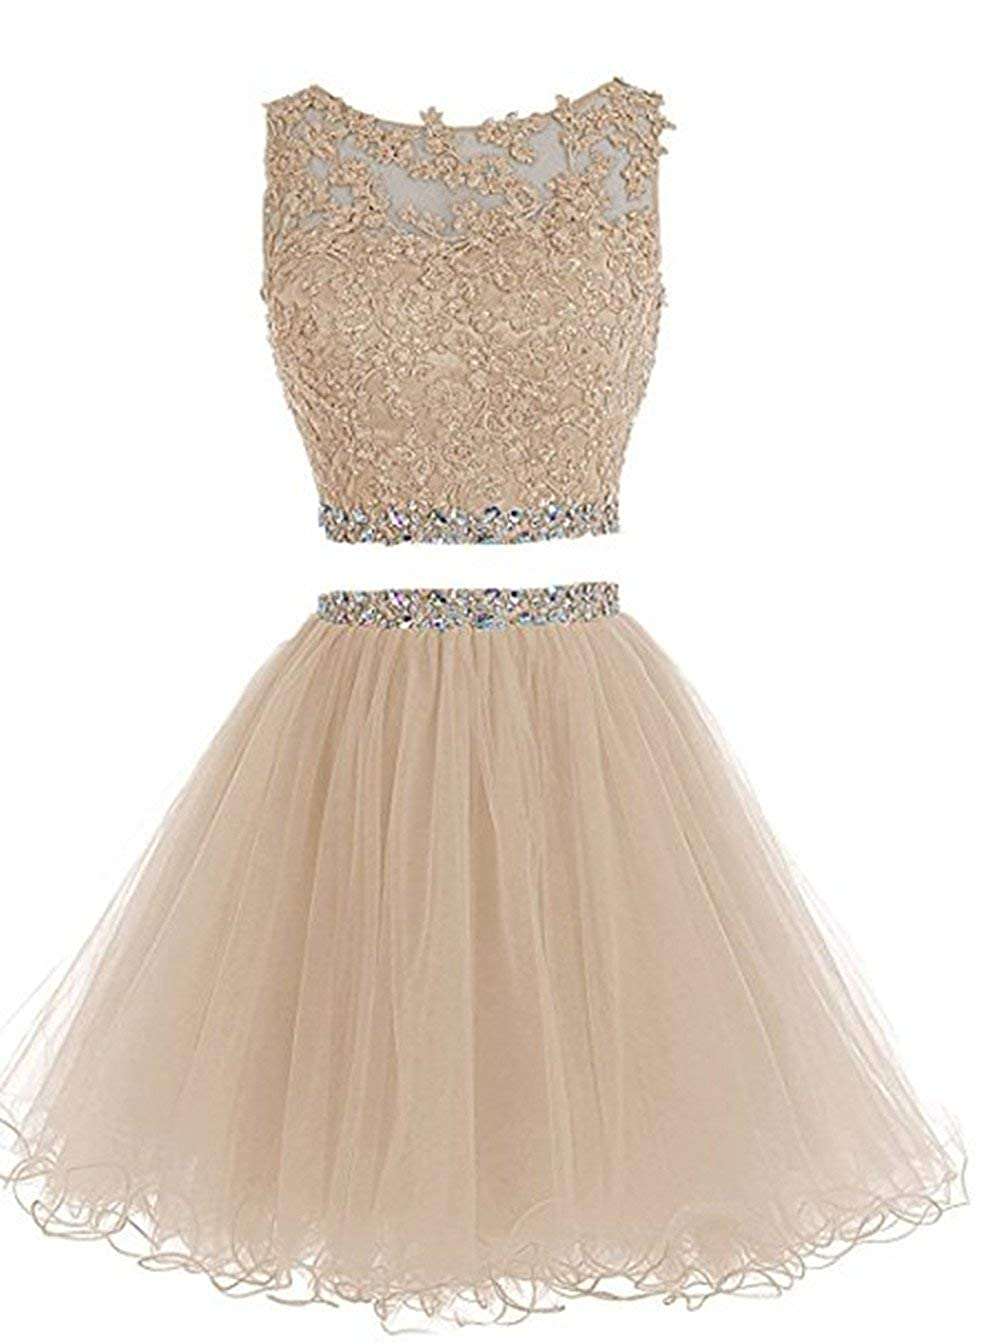 Champagne Clothfun Women's Short Beaded 2 Piece Homecoming Dresses Tulle Prom Dress Cocktail Party Gown 042